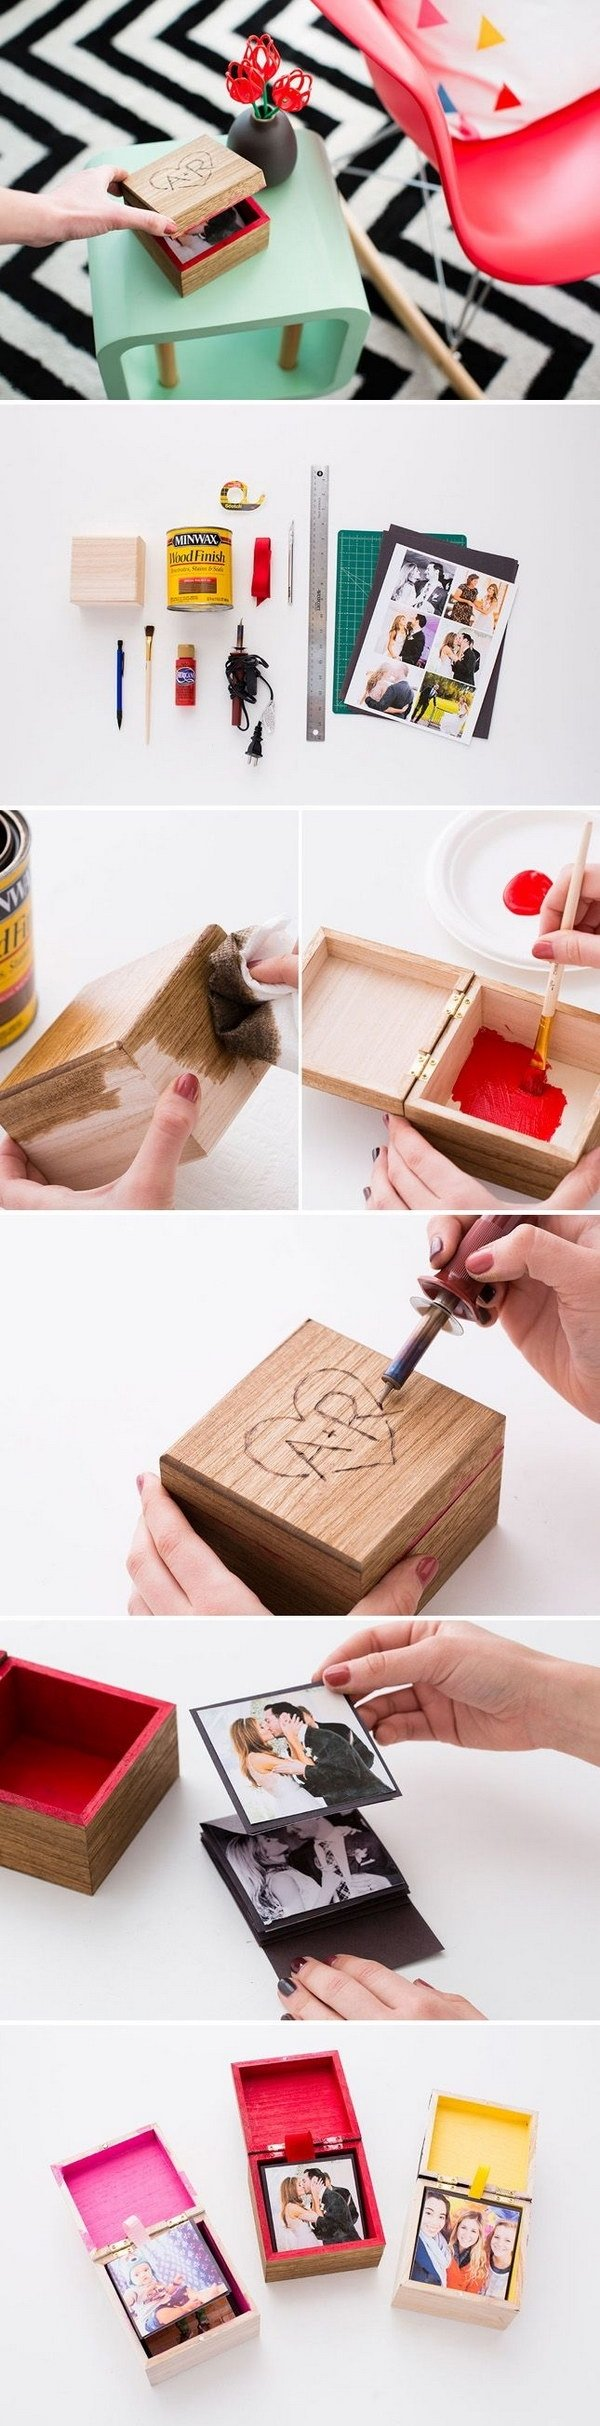 10 Nice Diy Gift Ideas For Him 25 diy gifts for him with lots of tutorials 2017 6 2020